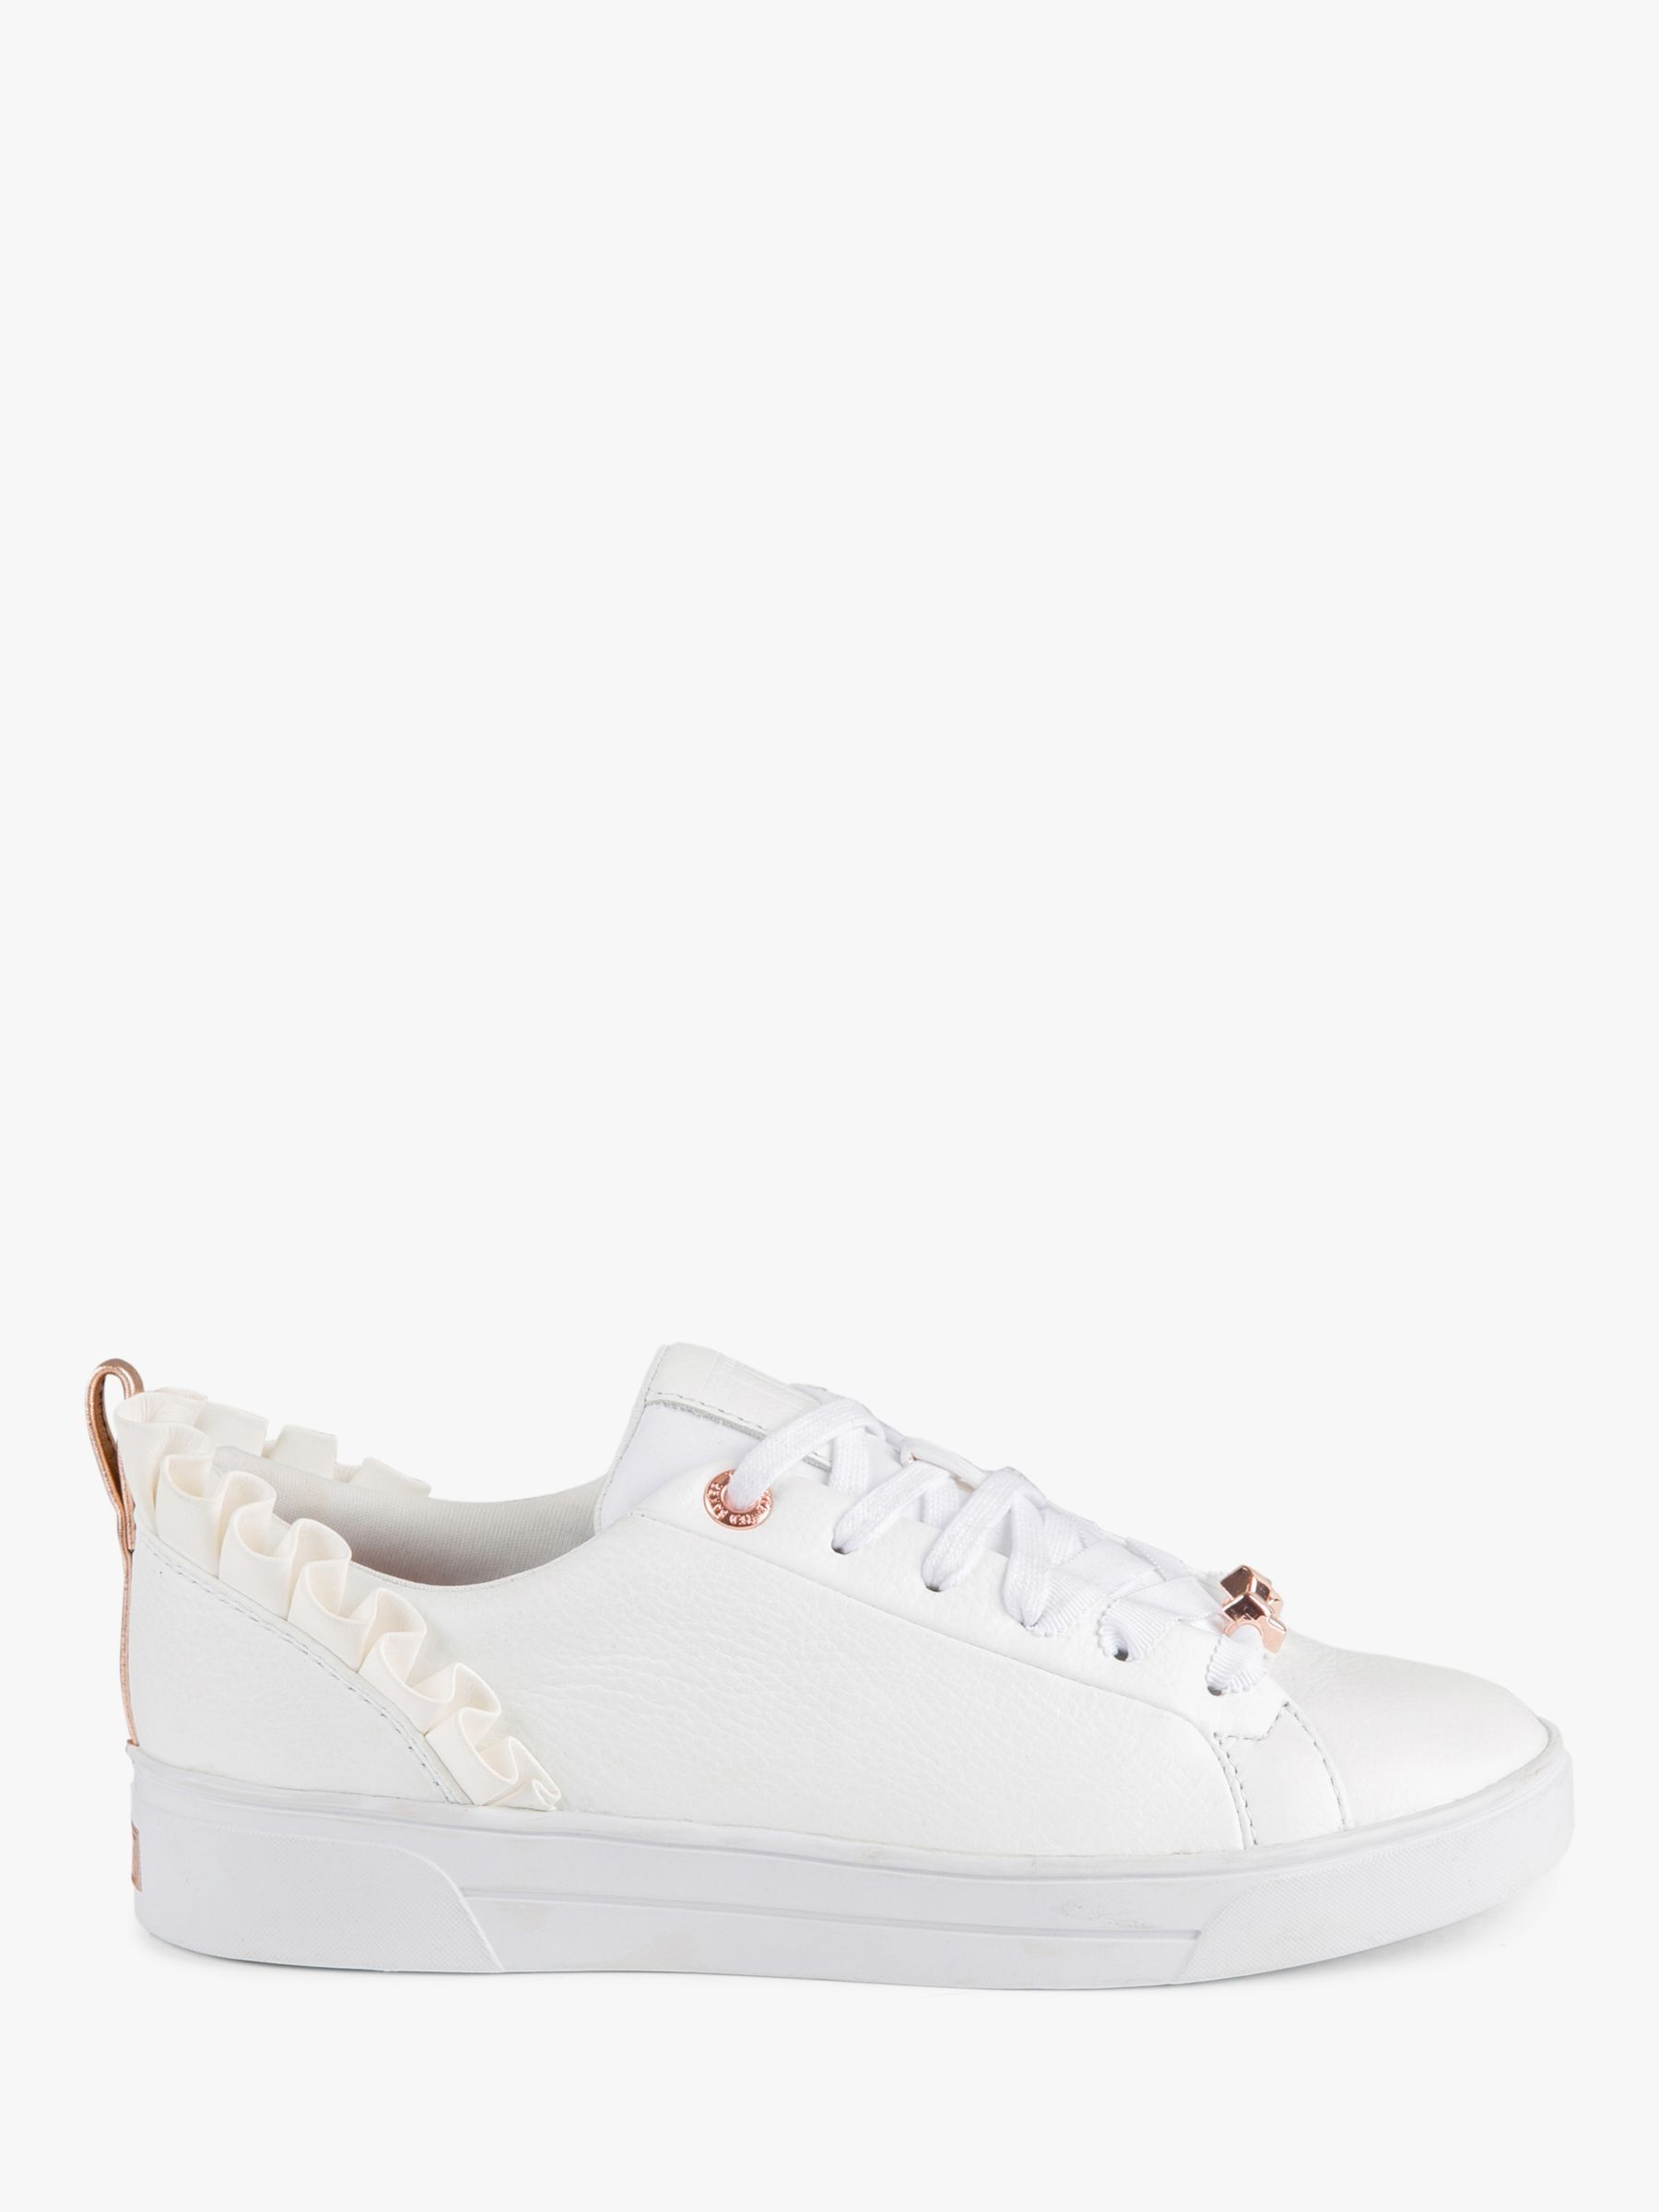 Ted Baker Women/'s Astrina Frill Leather Lace Up Trainer White